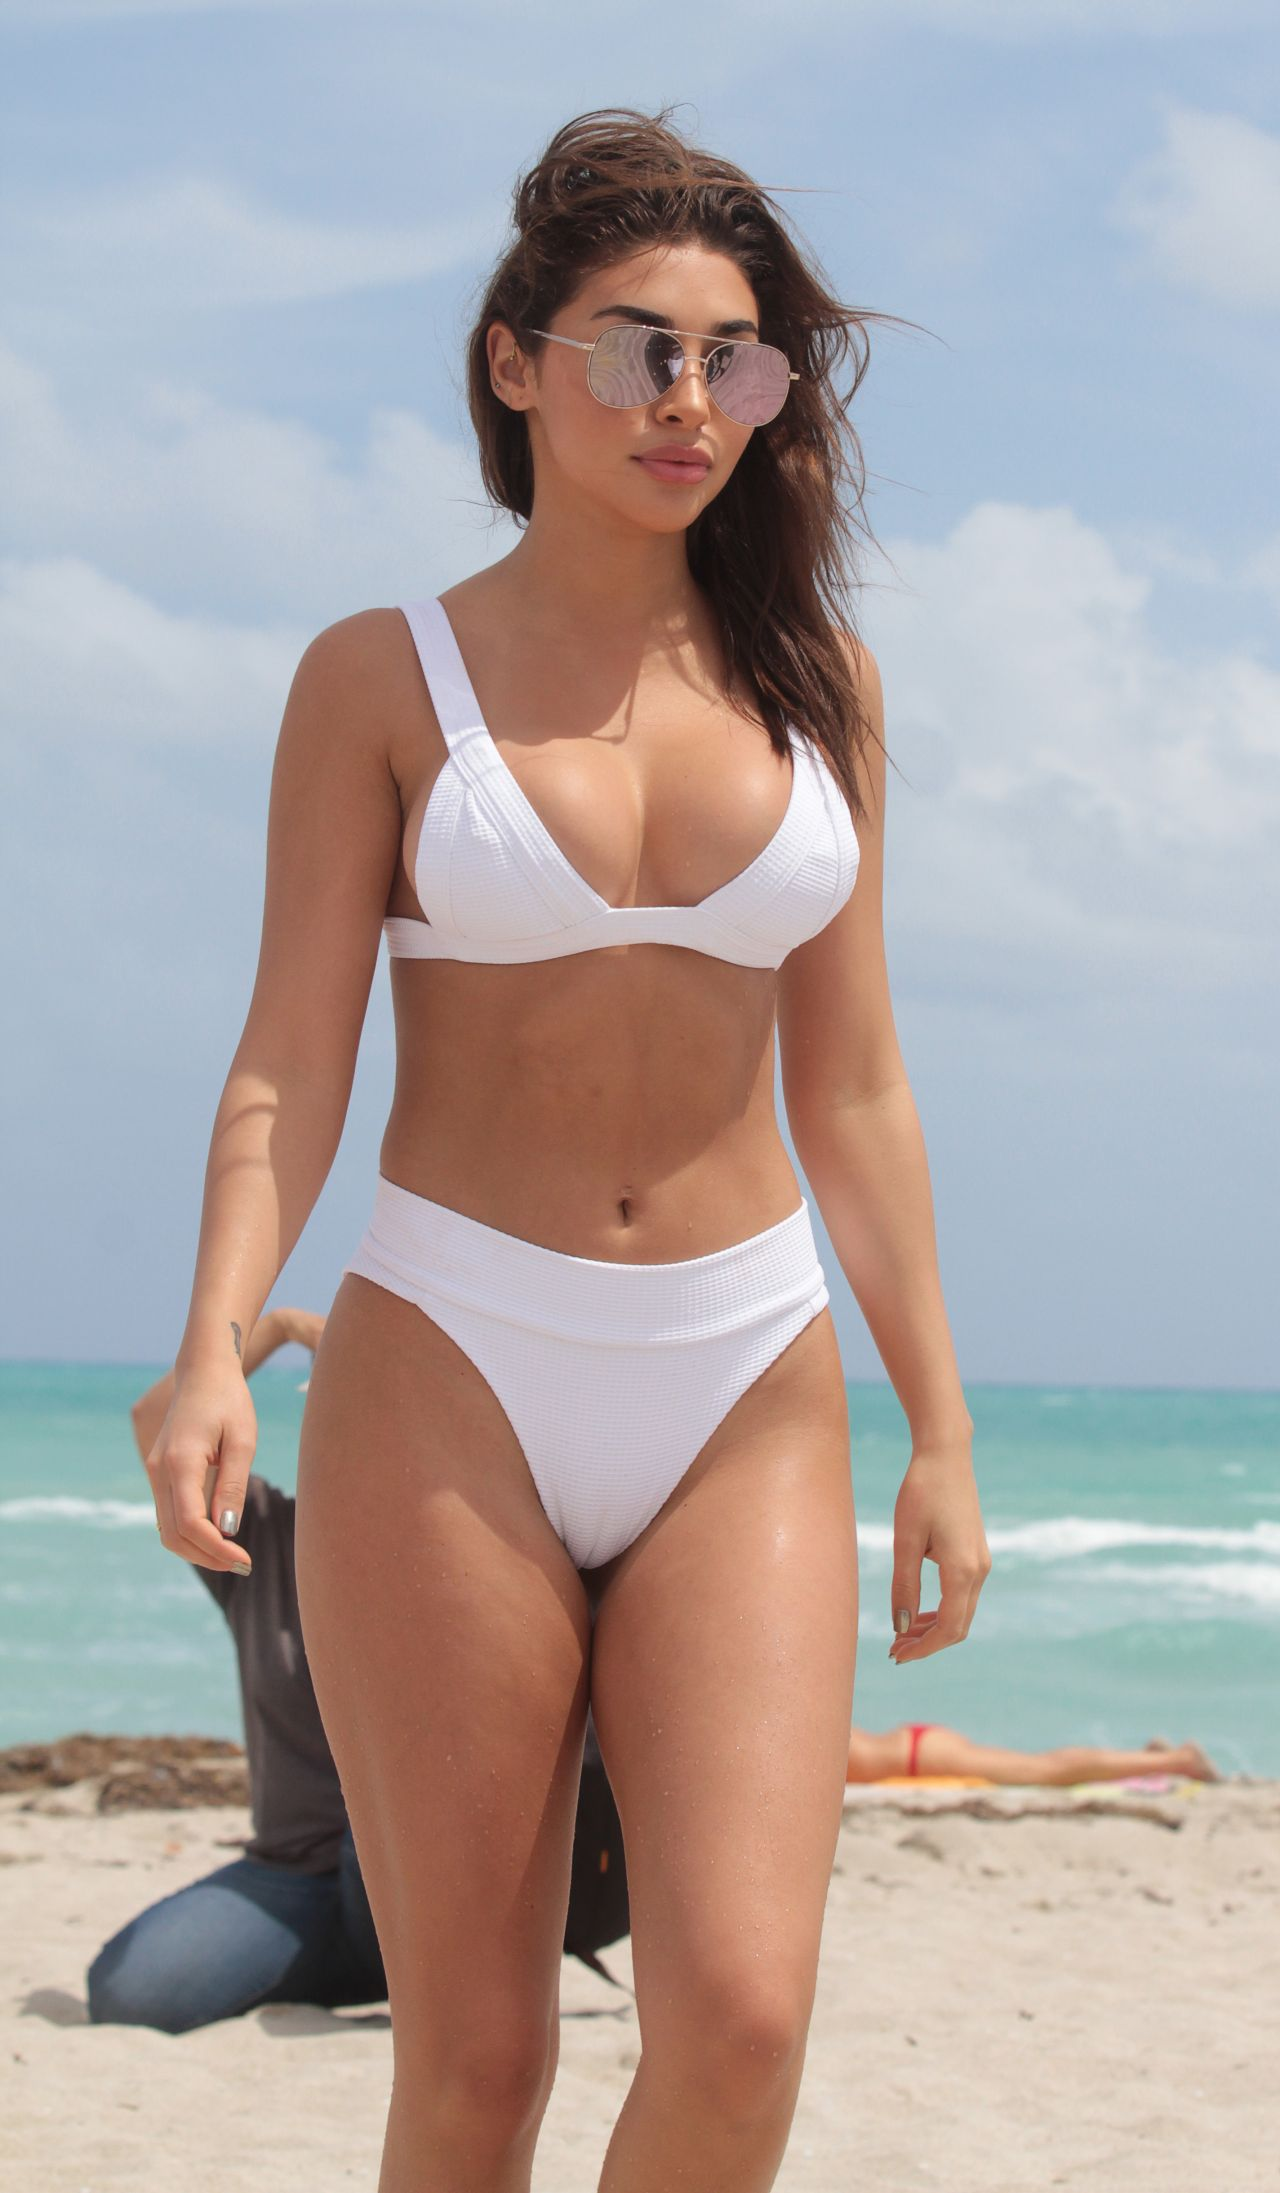 http://celebmafia.com/wp-content/uploads/2017/03/chantel-jeffries-in-white-bikini-at-miami-beach-3-25-2017-1.jpg